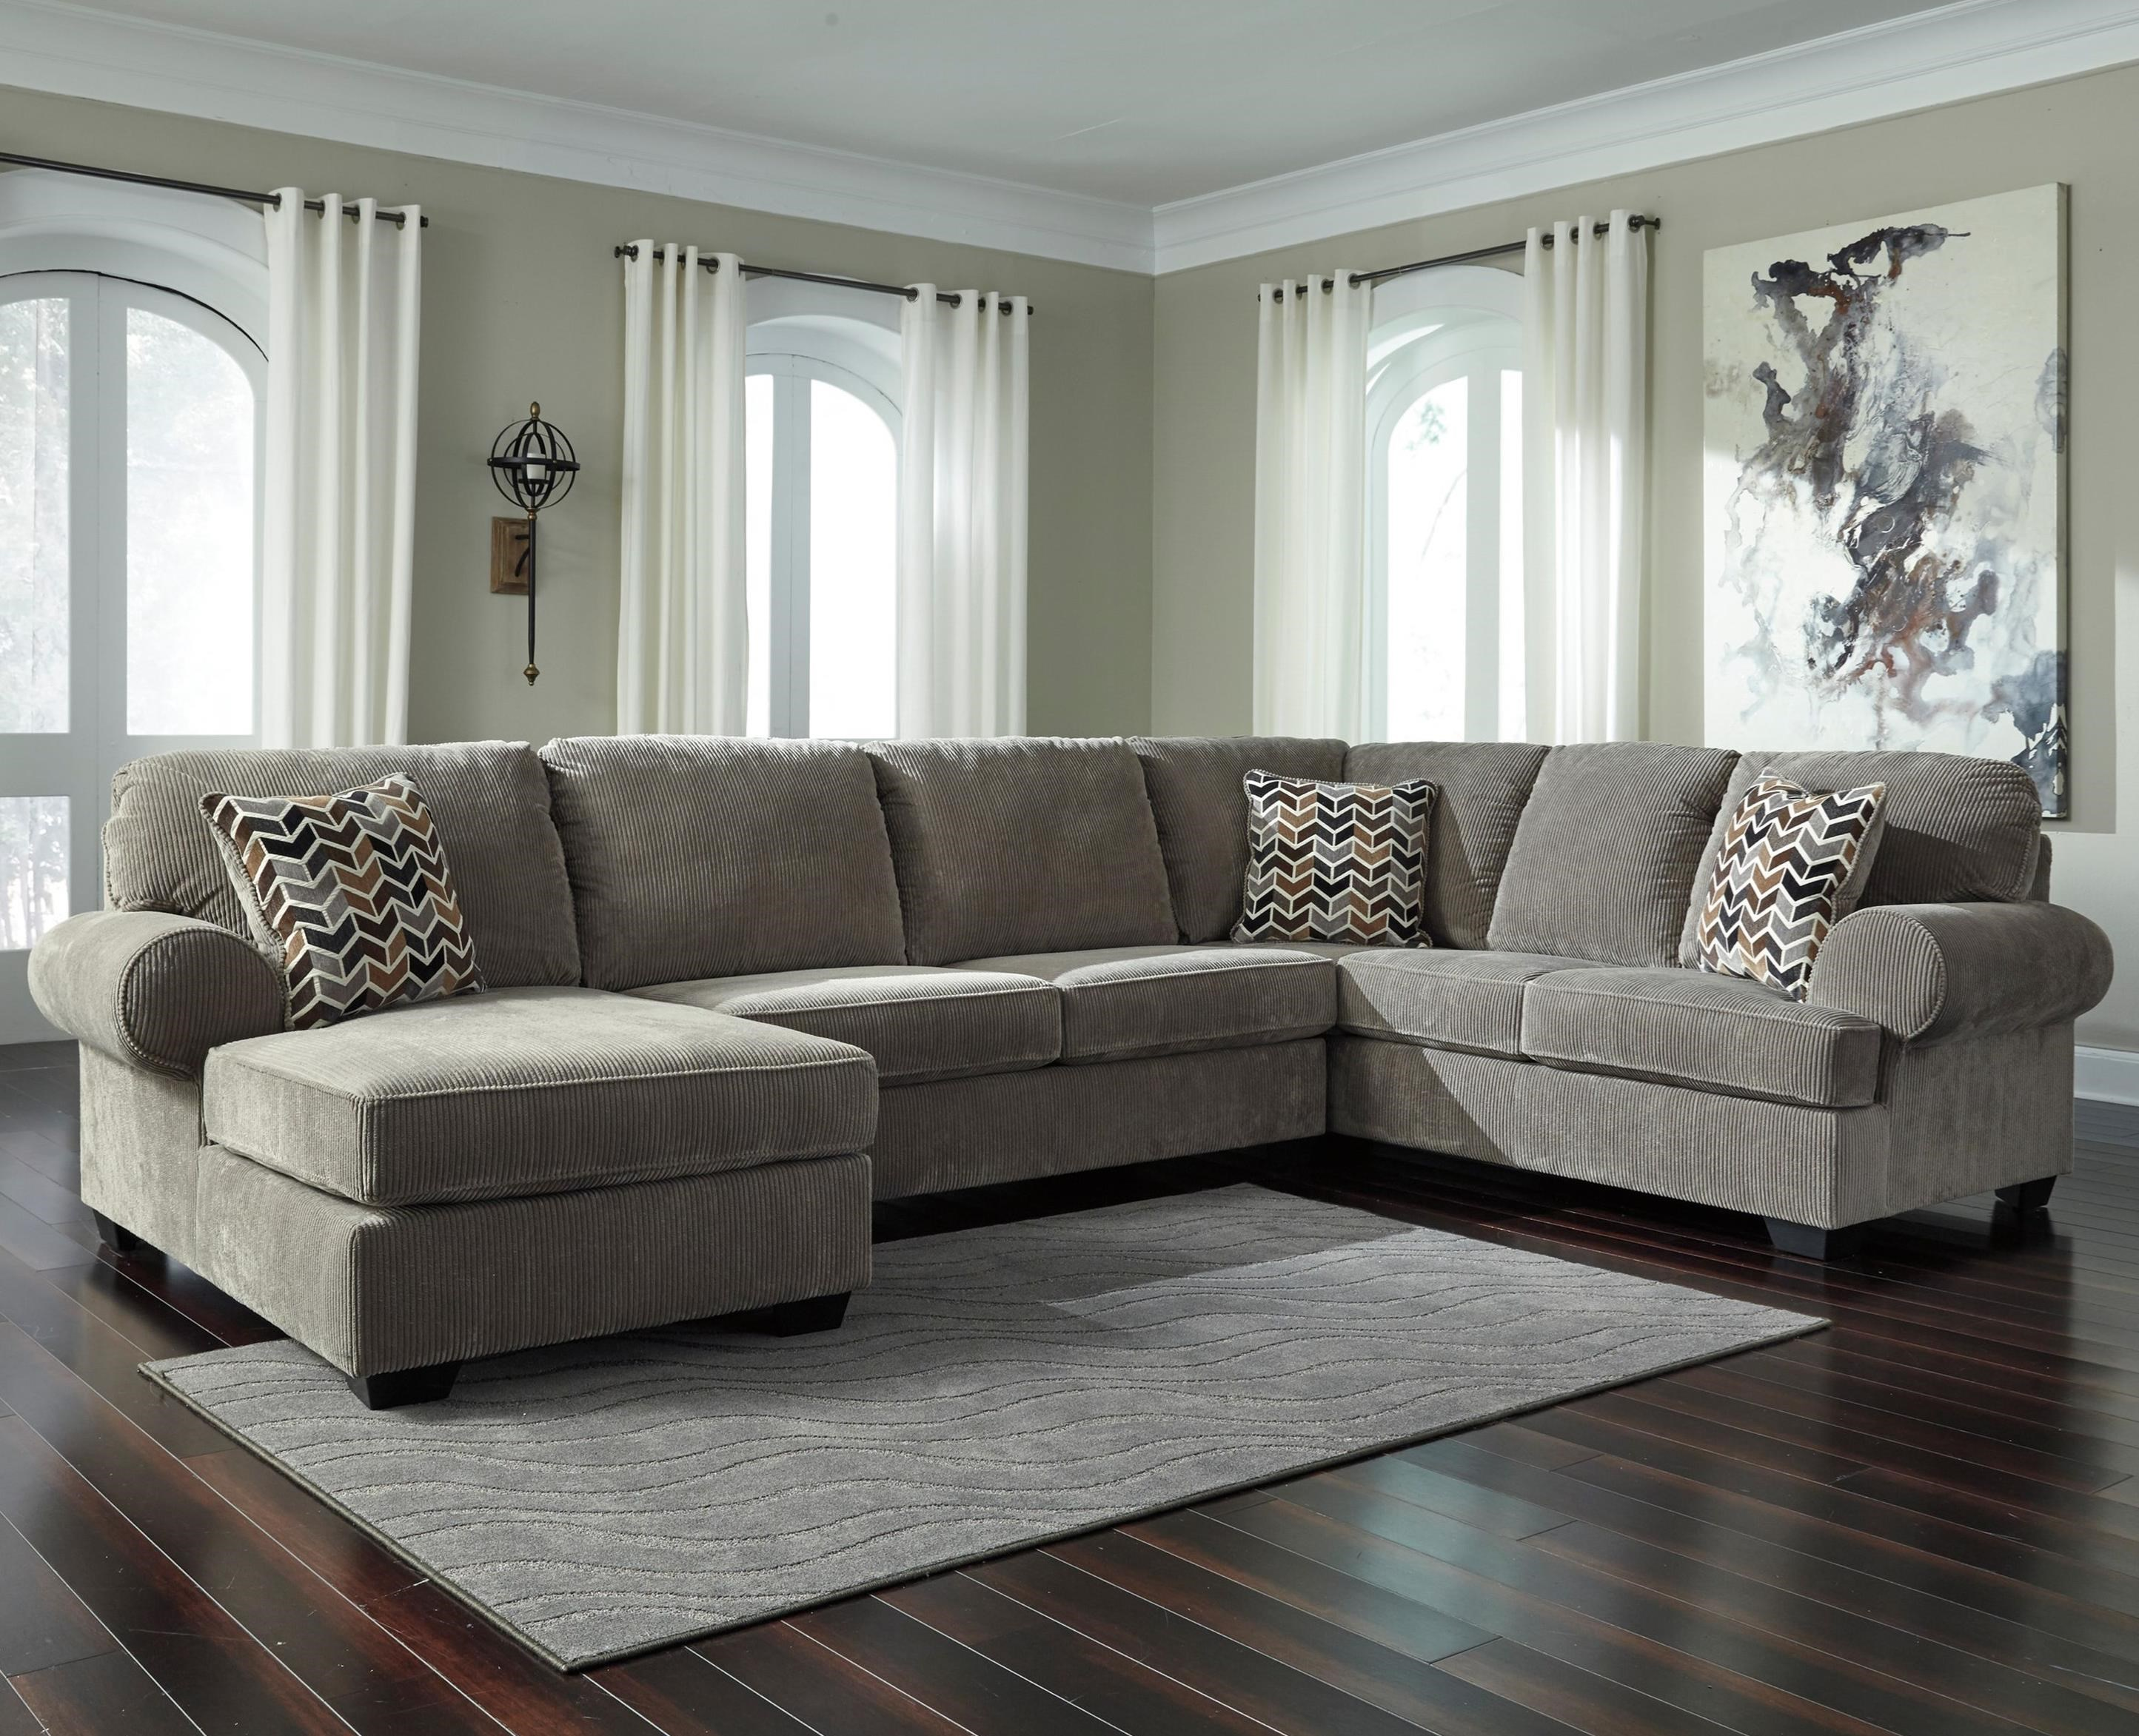 Signature design by ashley jinllingsly contemporary 3 for Ashley sectional sofa with chaise